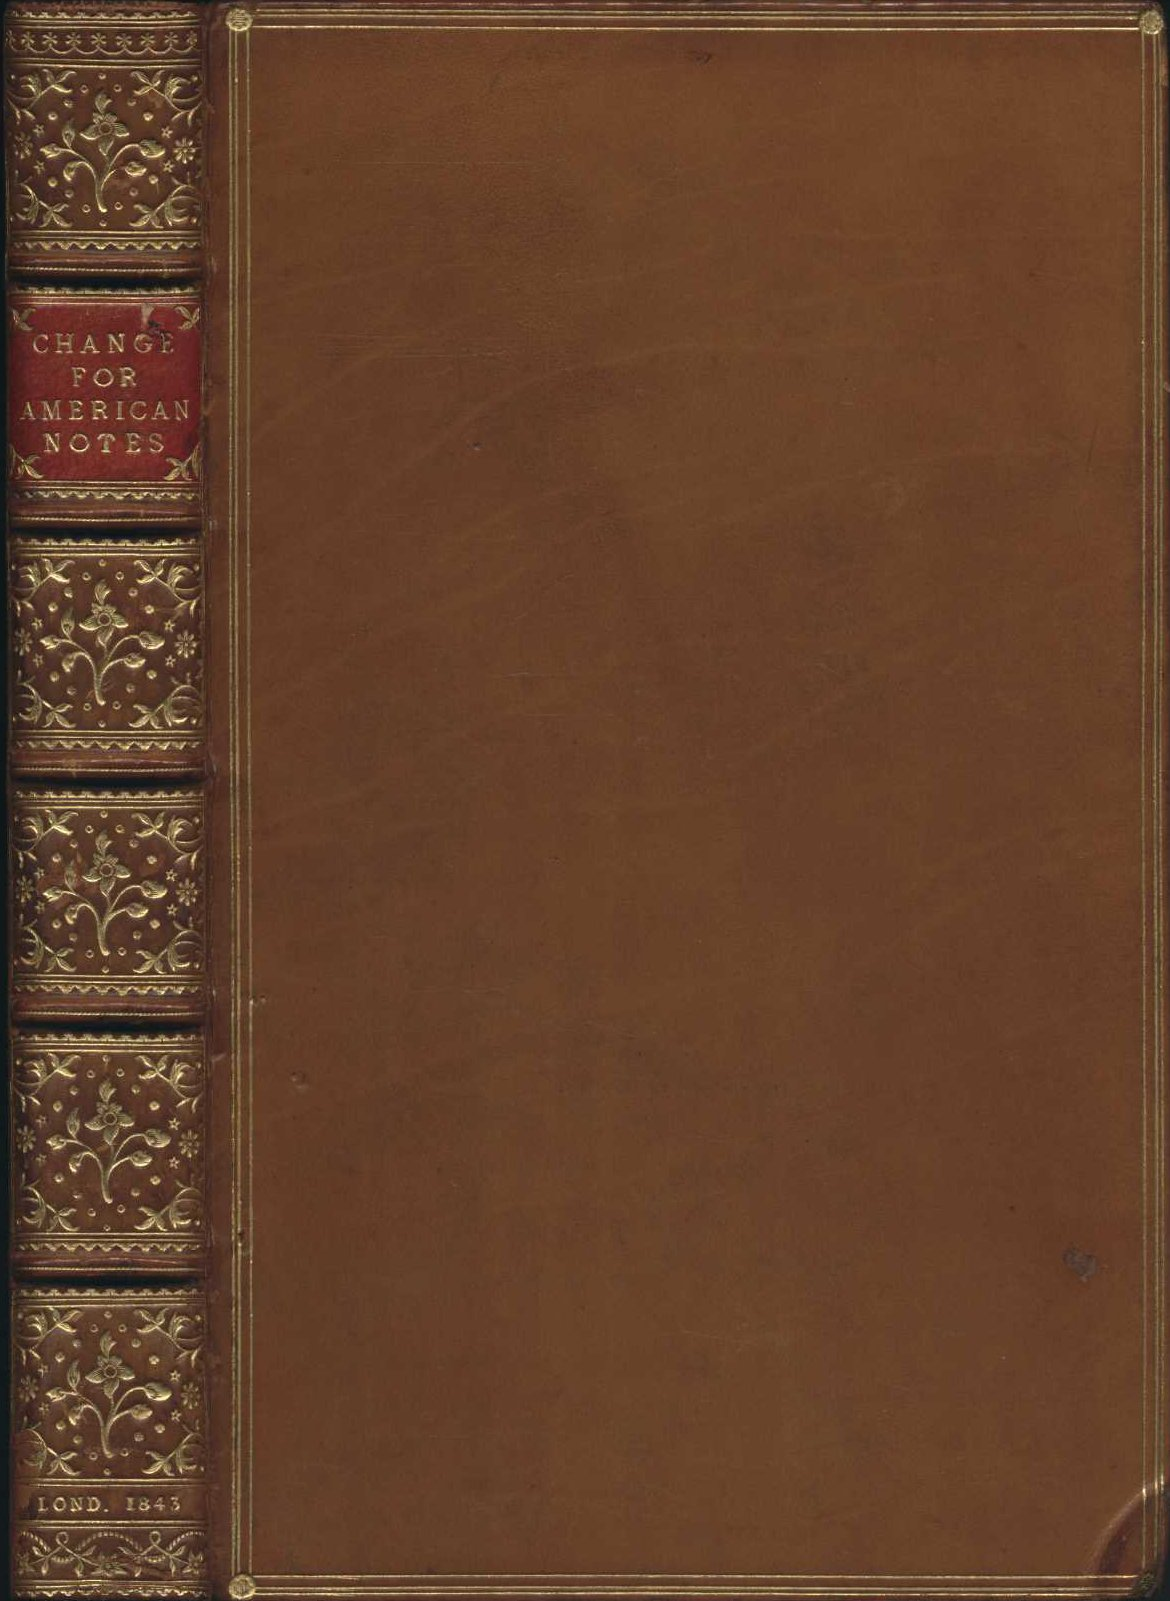 Henry Wood. Change for the American notes: in letters from London to New York. London: Wiley & Putnam, 1843.